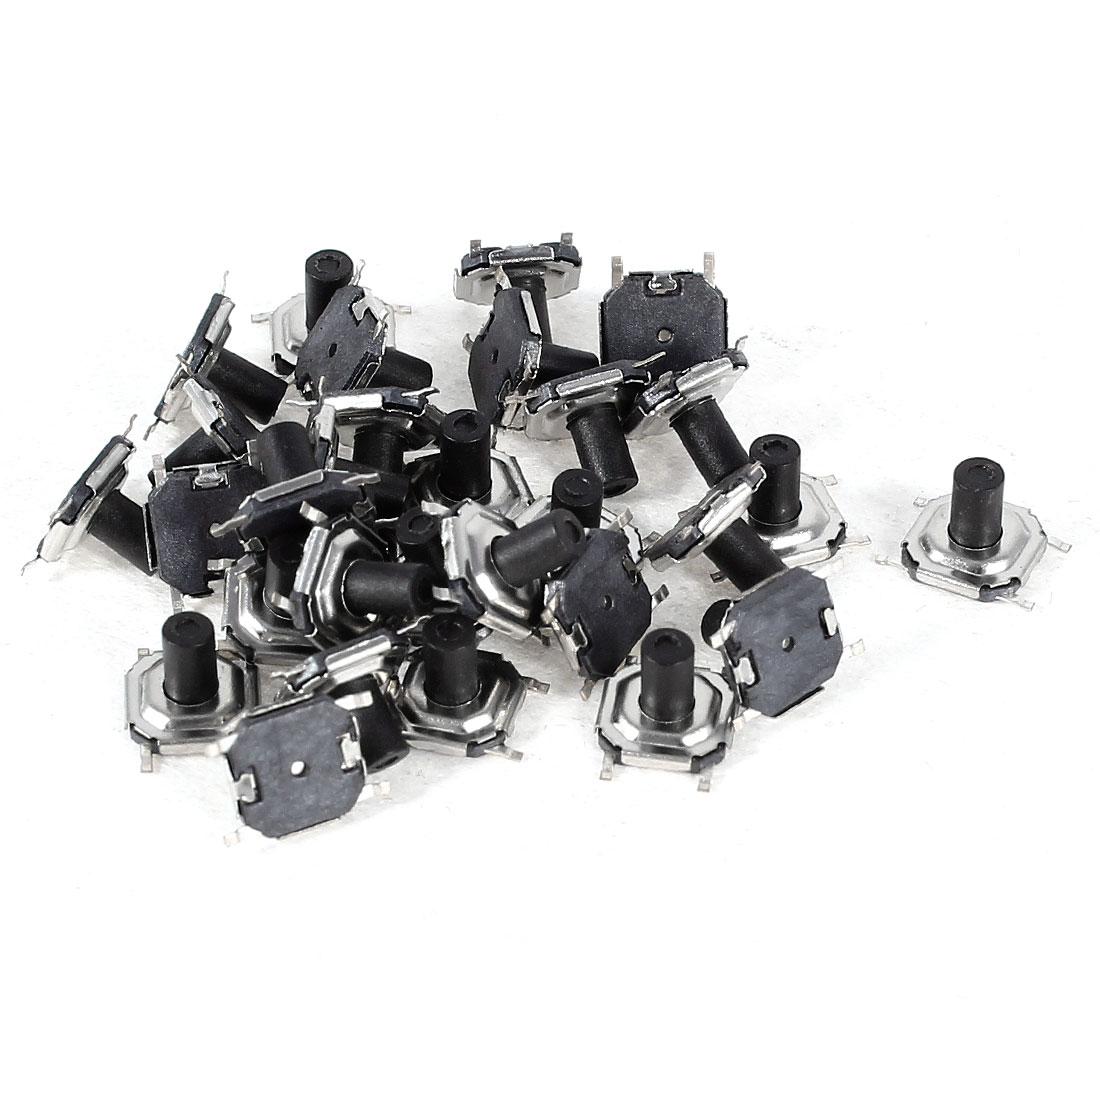 30 Pcs Momentary PCB Pushbutton Push Button Tact Tactile Switch SMD 5mmx5mmx4mm